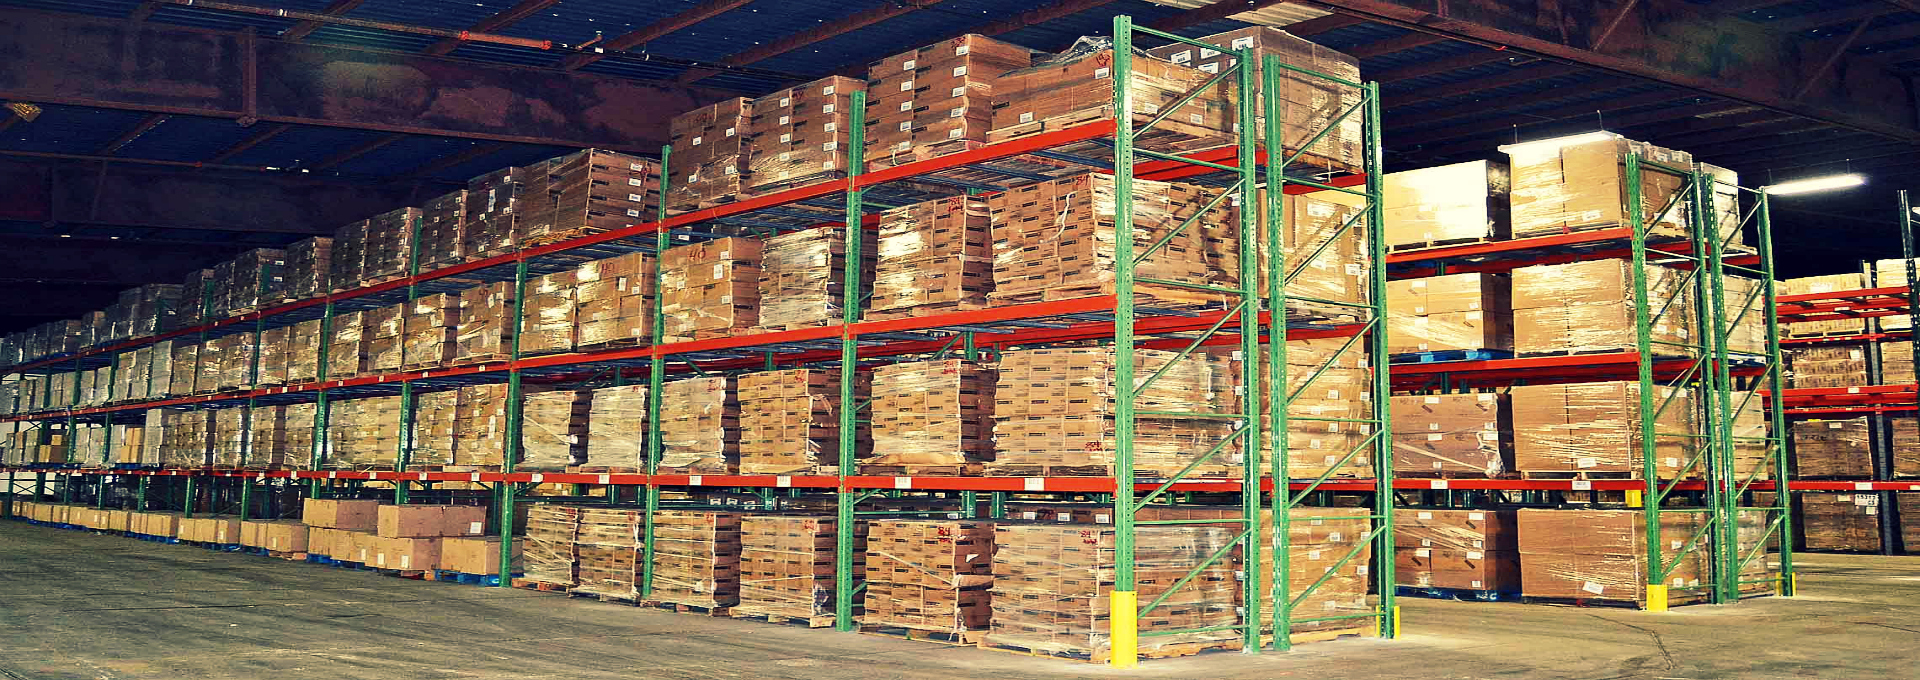 RGS Kenya - Warehousing Services